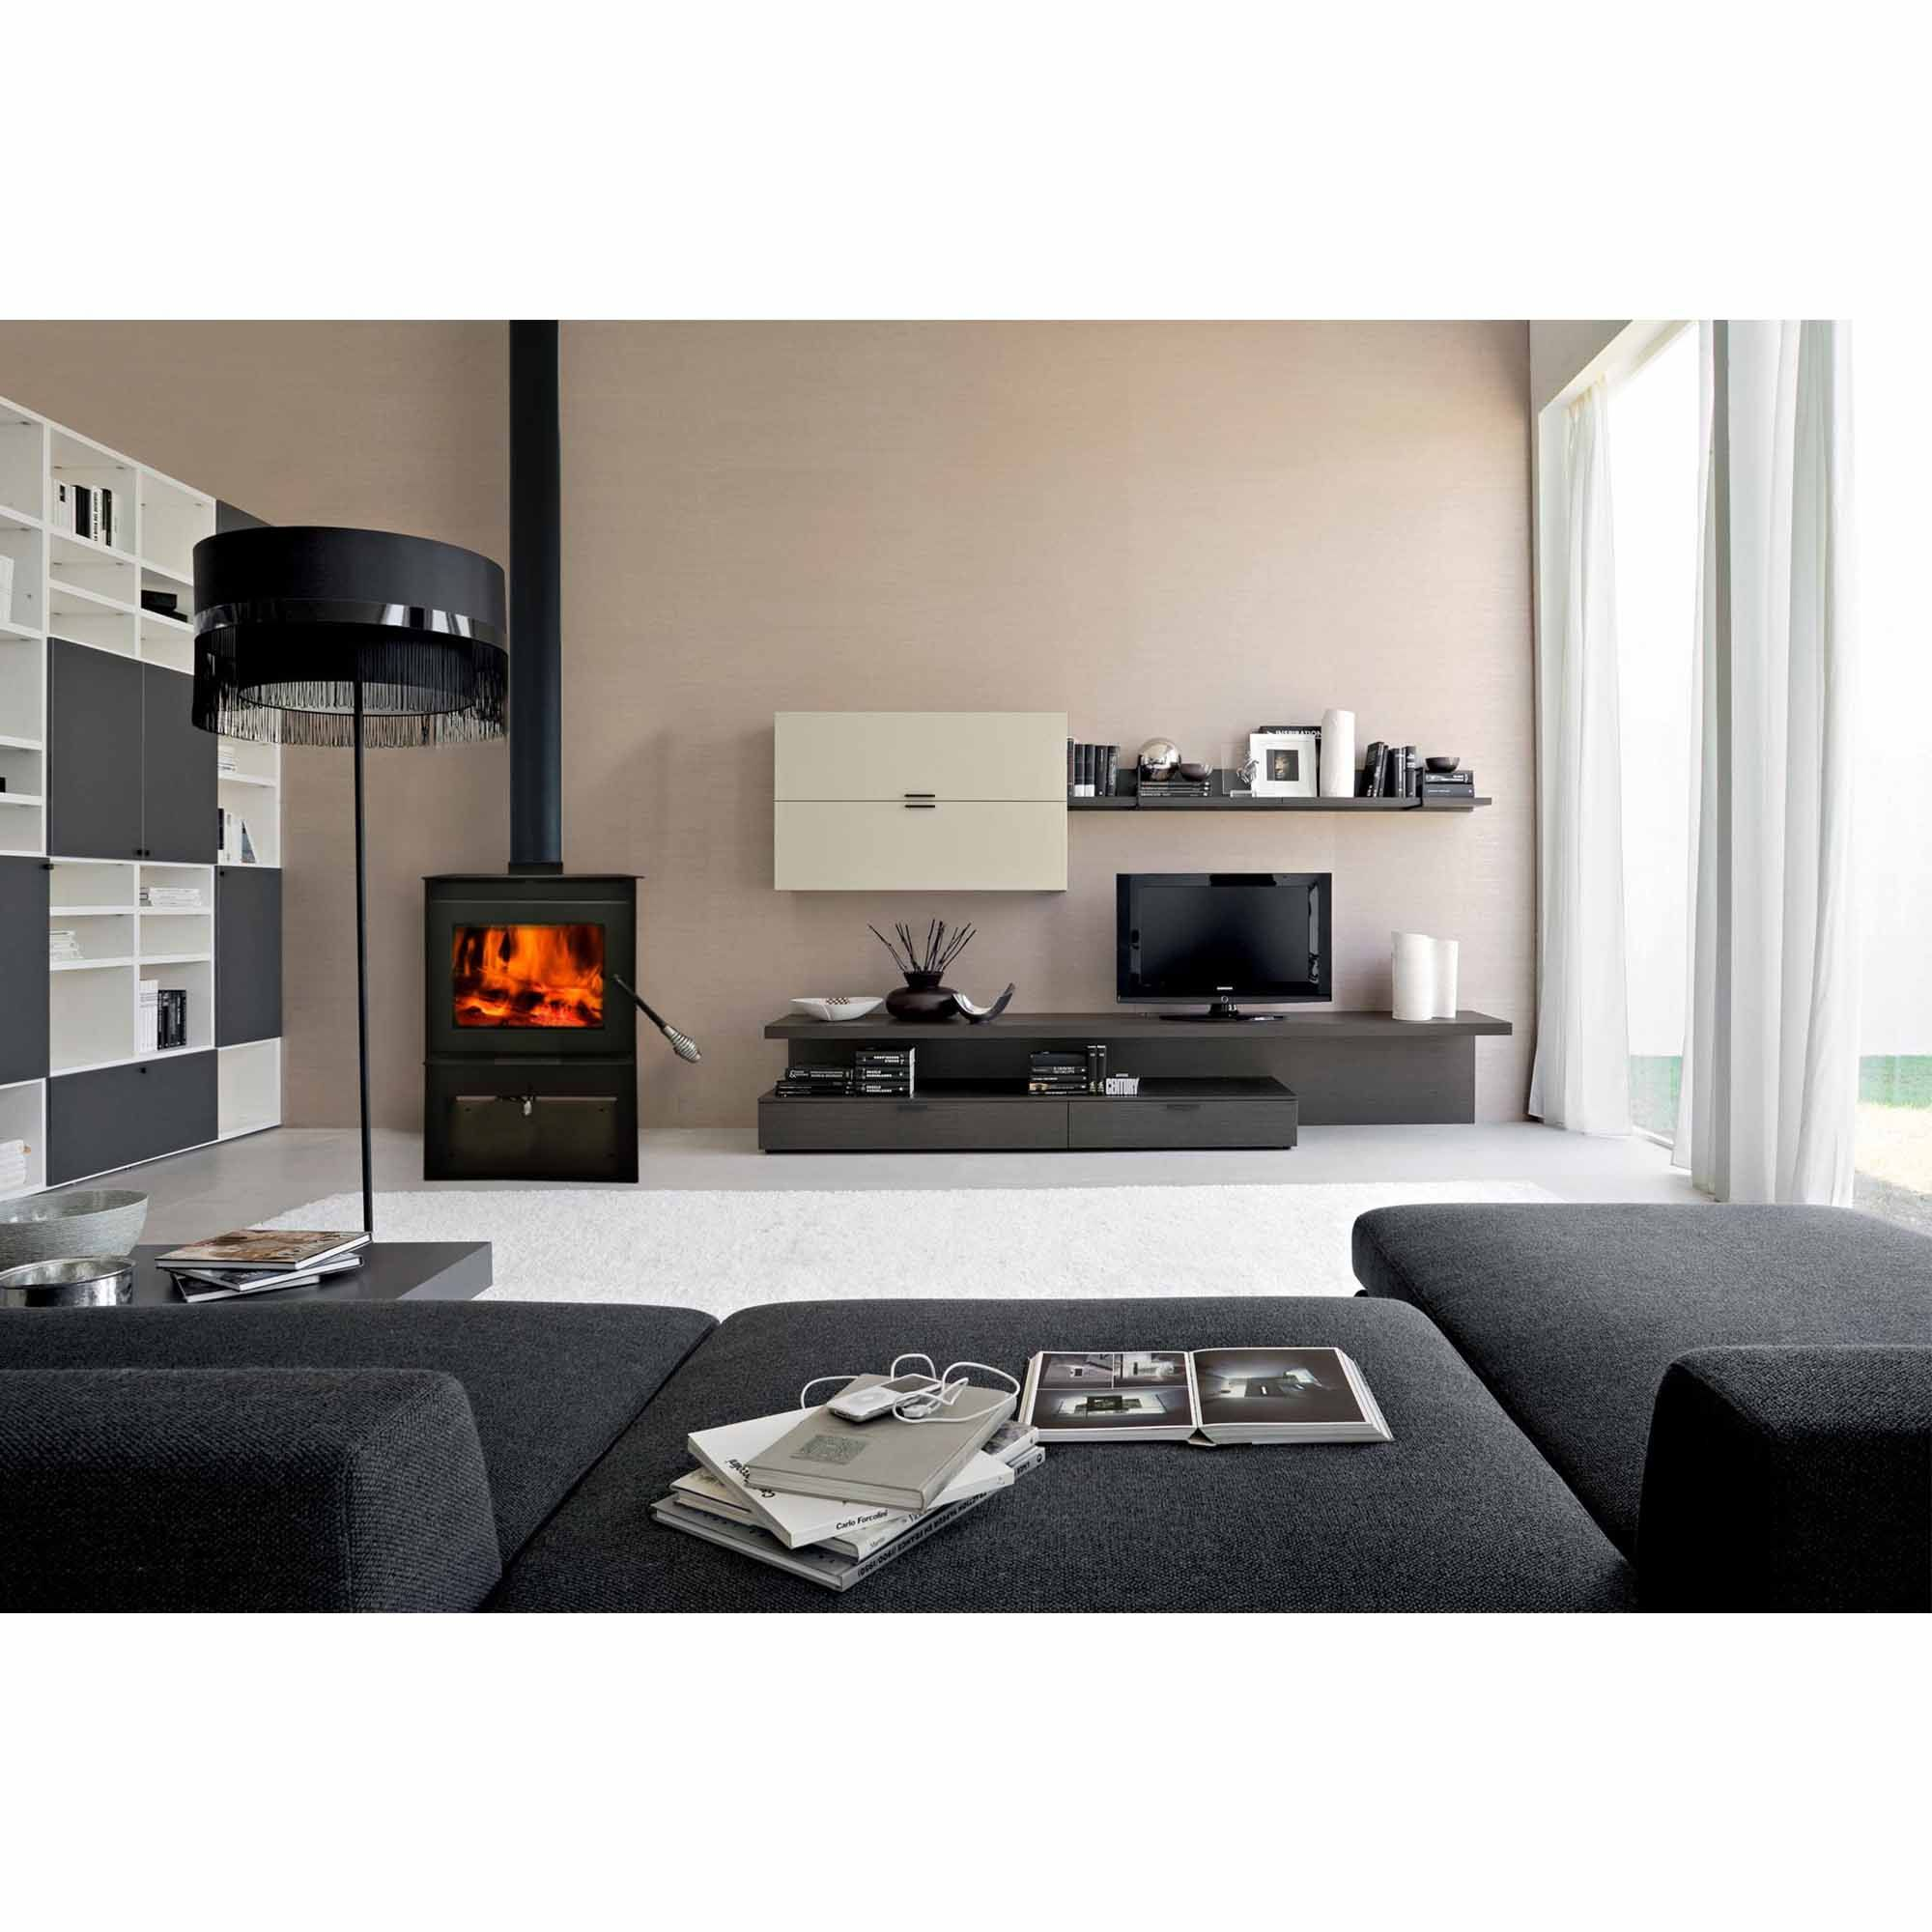 living room designs with wood stove lowes furniture kent ca englander small 1200 sq ft your atlantic